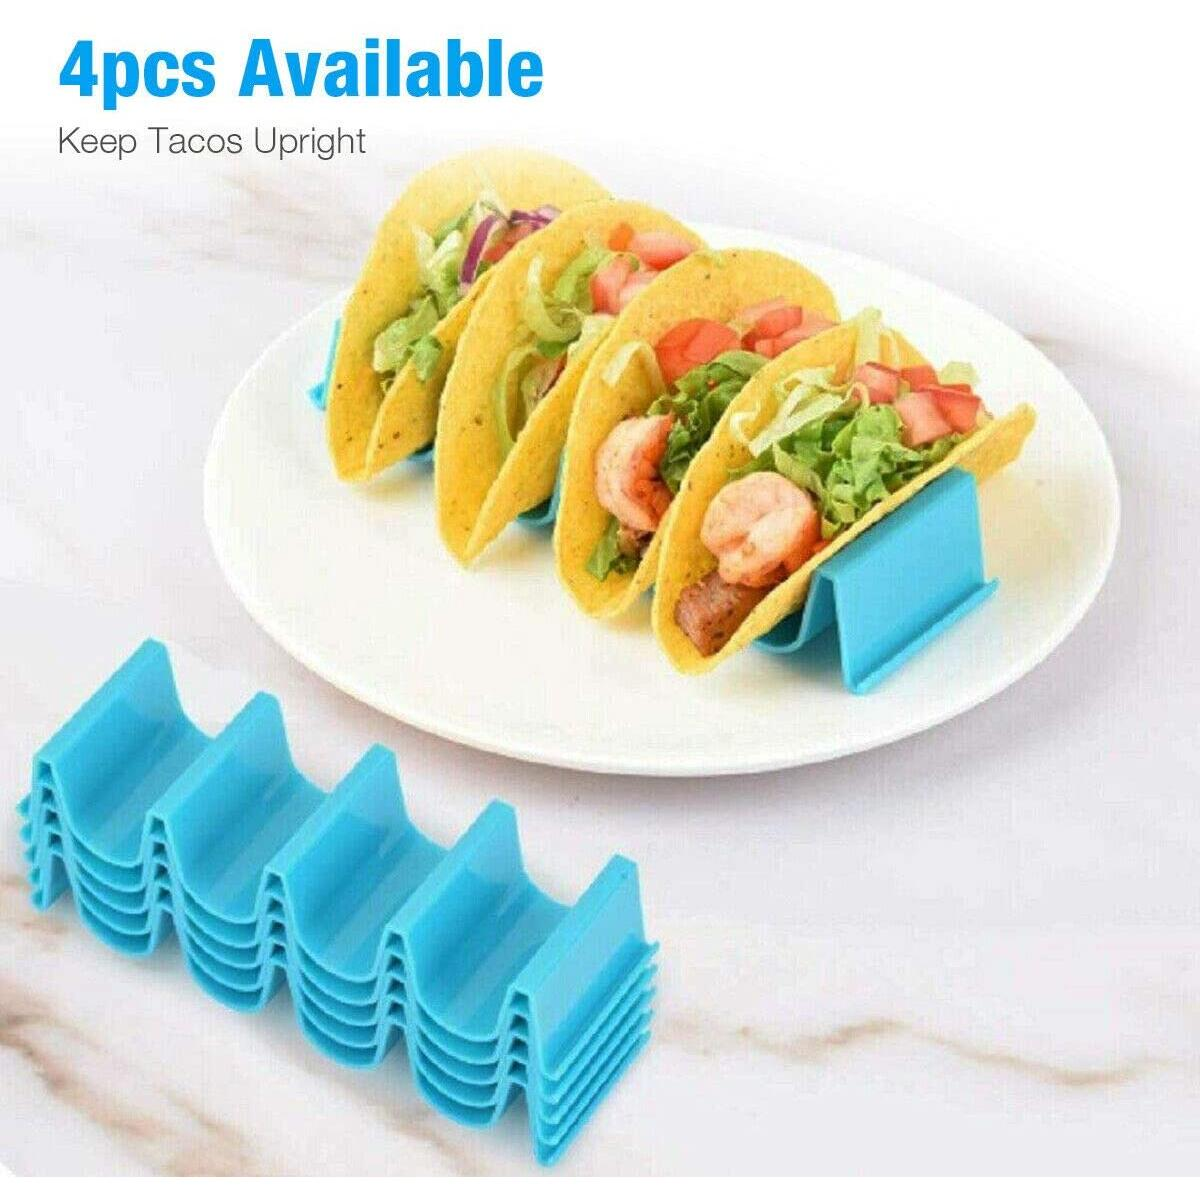 6Pcs Taco Holder Mexican Food Wave Shape Hard Rack Stand Kitchen Cooking Tool US